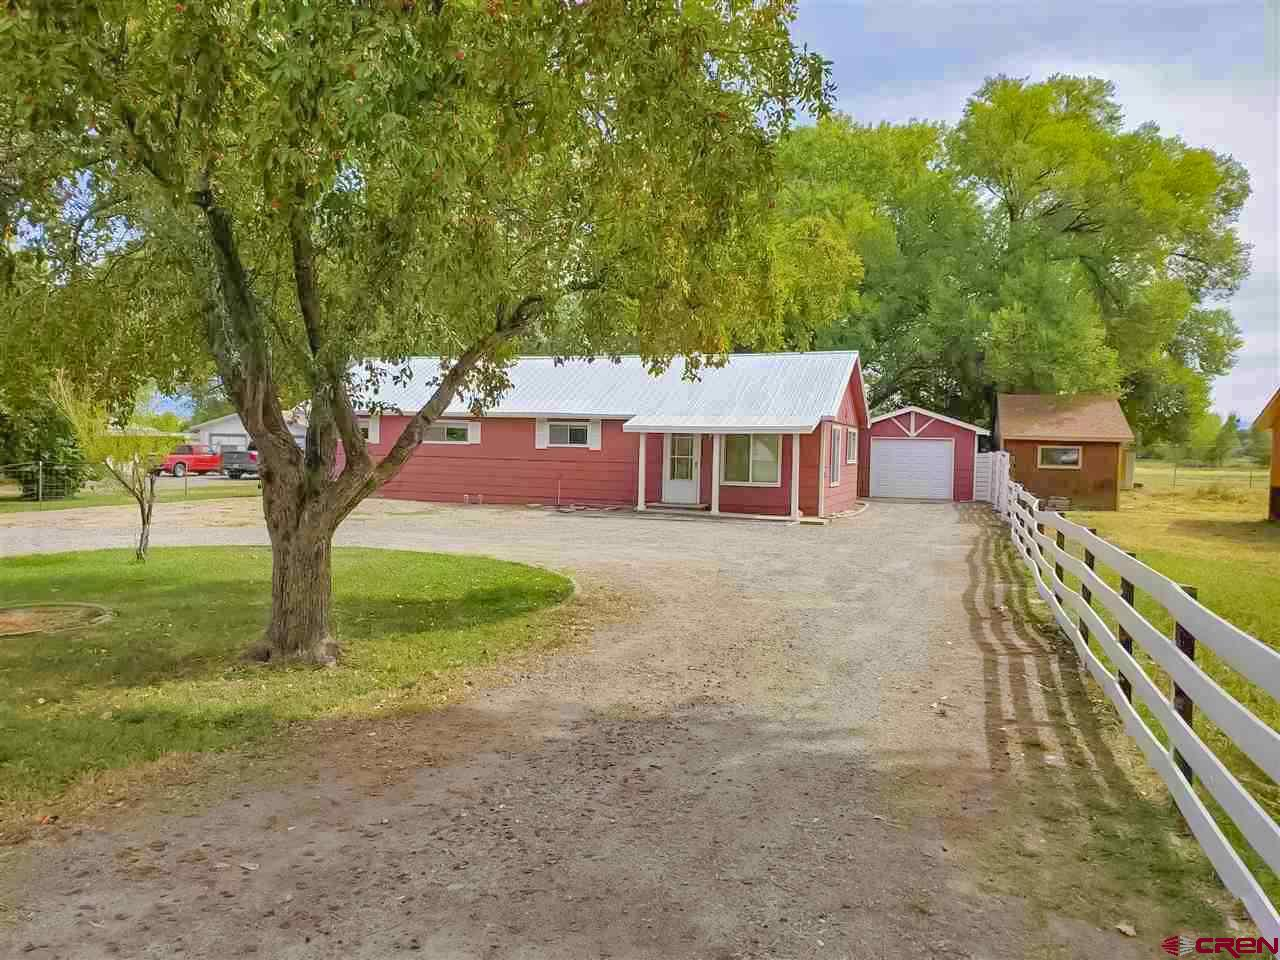 Freshly painted inside and out. New light fixtures, newer appliances (new or less than one year), 1 year old hot water heater and new carpet in bedrooms and family room. One car garage with attached workshop and shed in back yard. Great location!